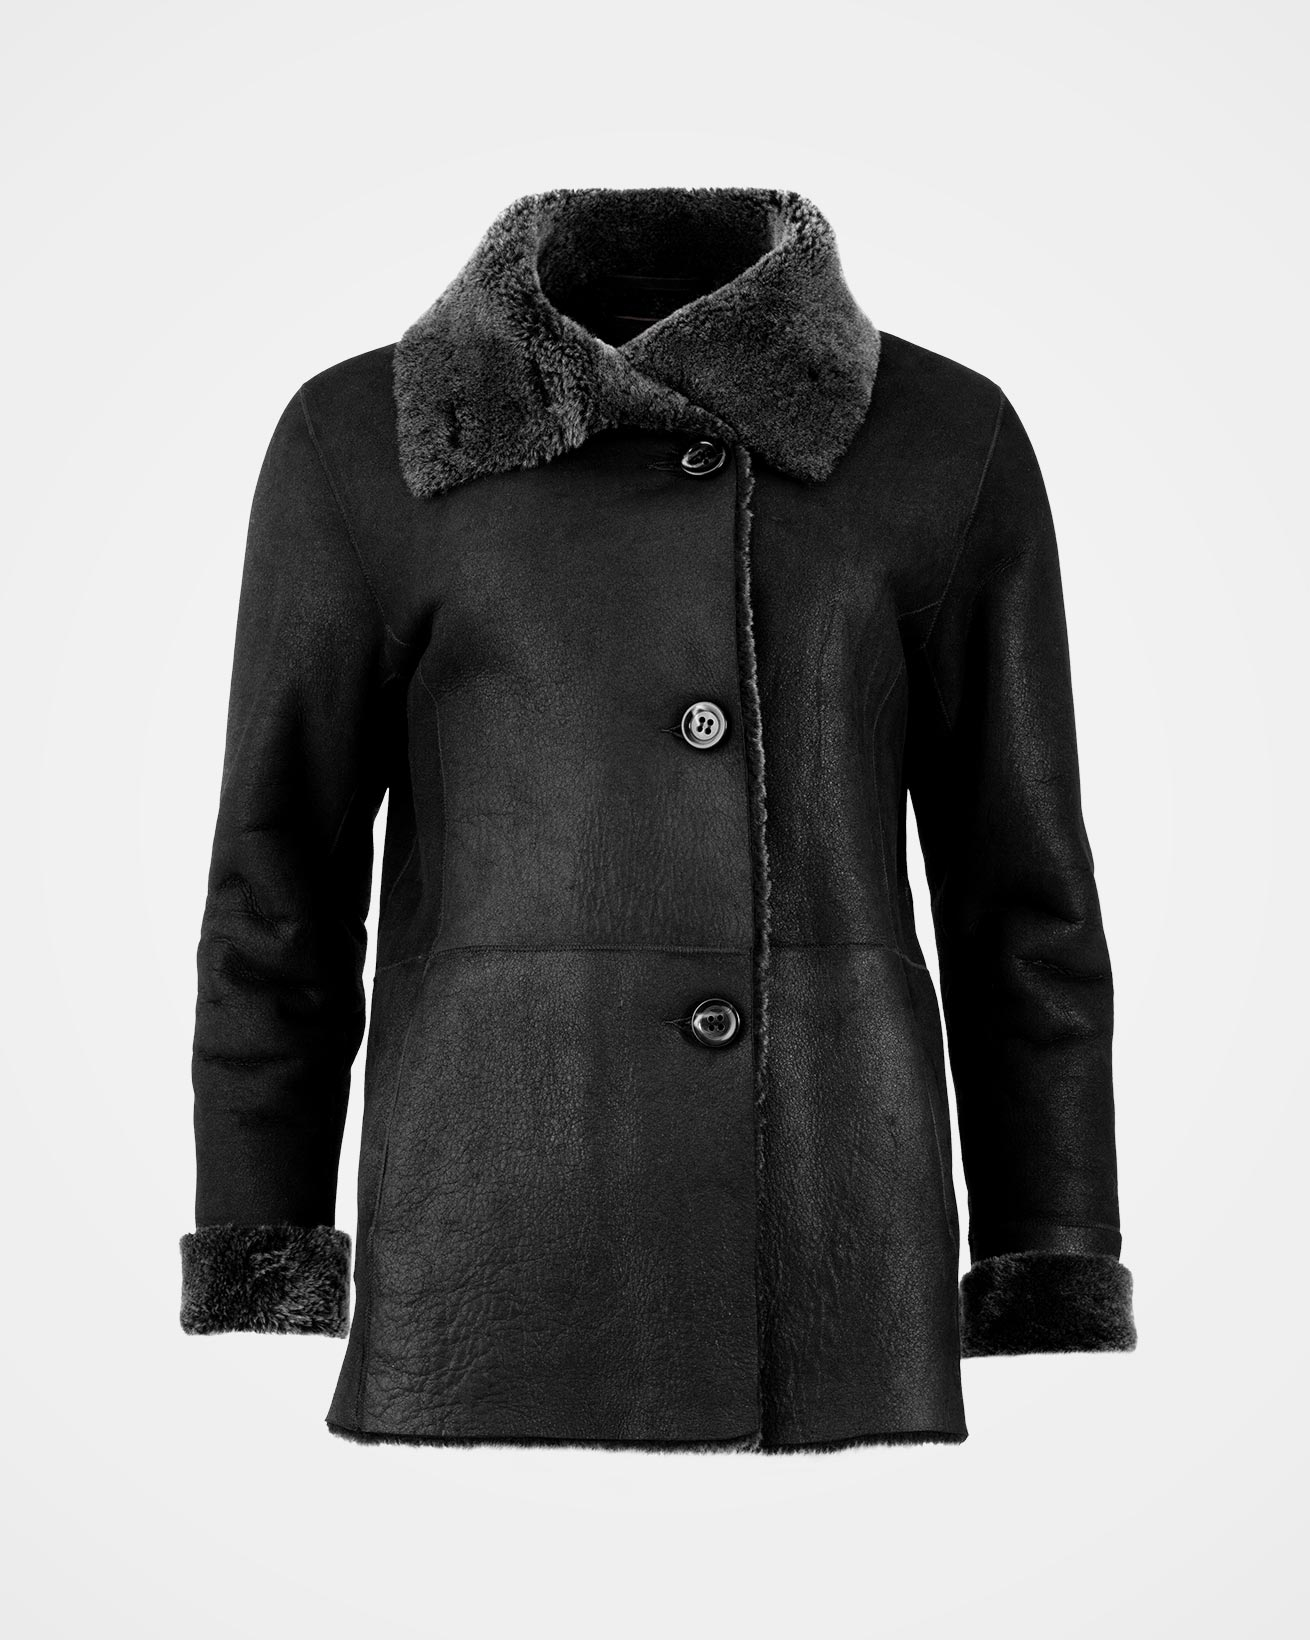 7257_sheepskin-box-jacket_black_front.jpg